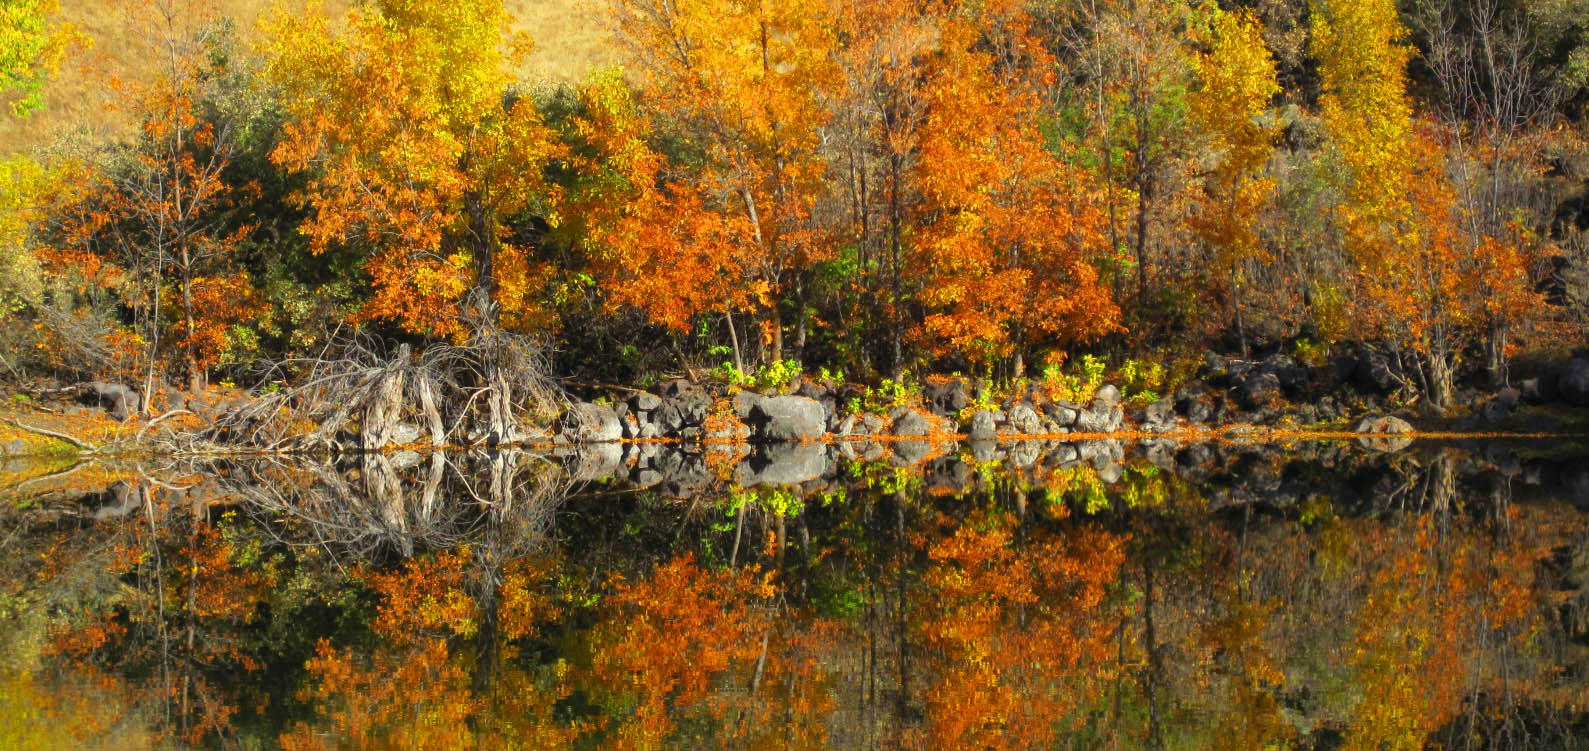 Fall at the Frog Ponds.JPG